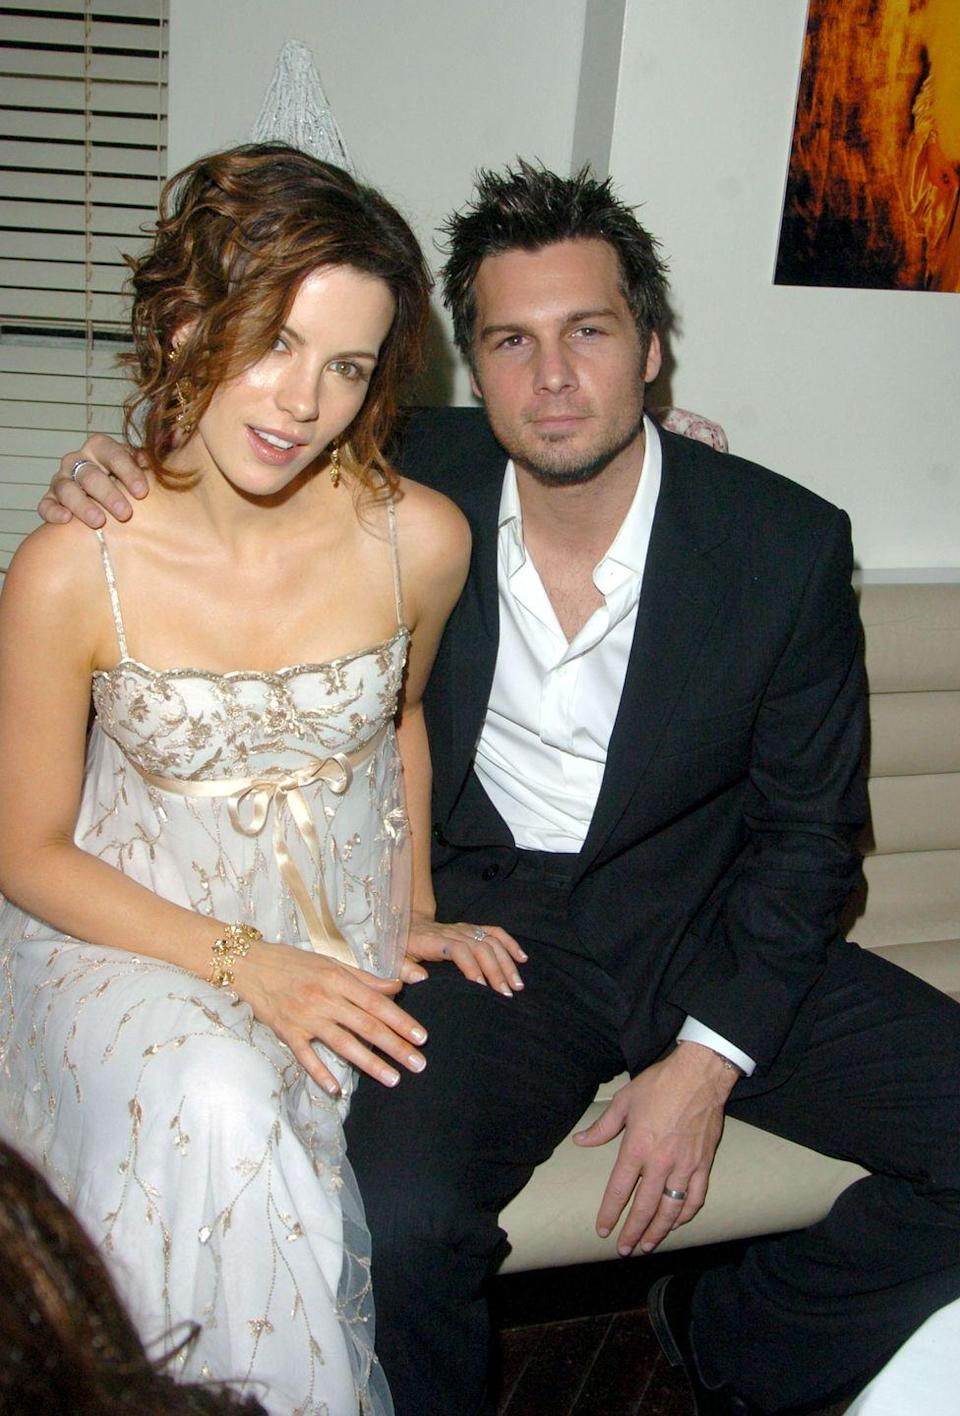 <p>Before Kate Beckinsale was linked to Goody Grace or Pete Davidson, she was married to director Len Wiseman. The couple got together after the actress's split from the father of her child, Michael Sheen, and made it official in 2004. They were married for 15 years before splitting in 2019. </p>